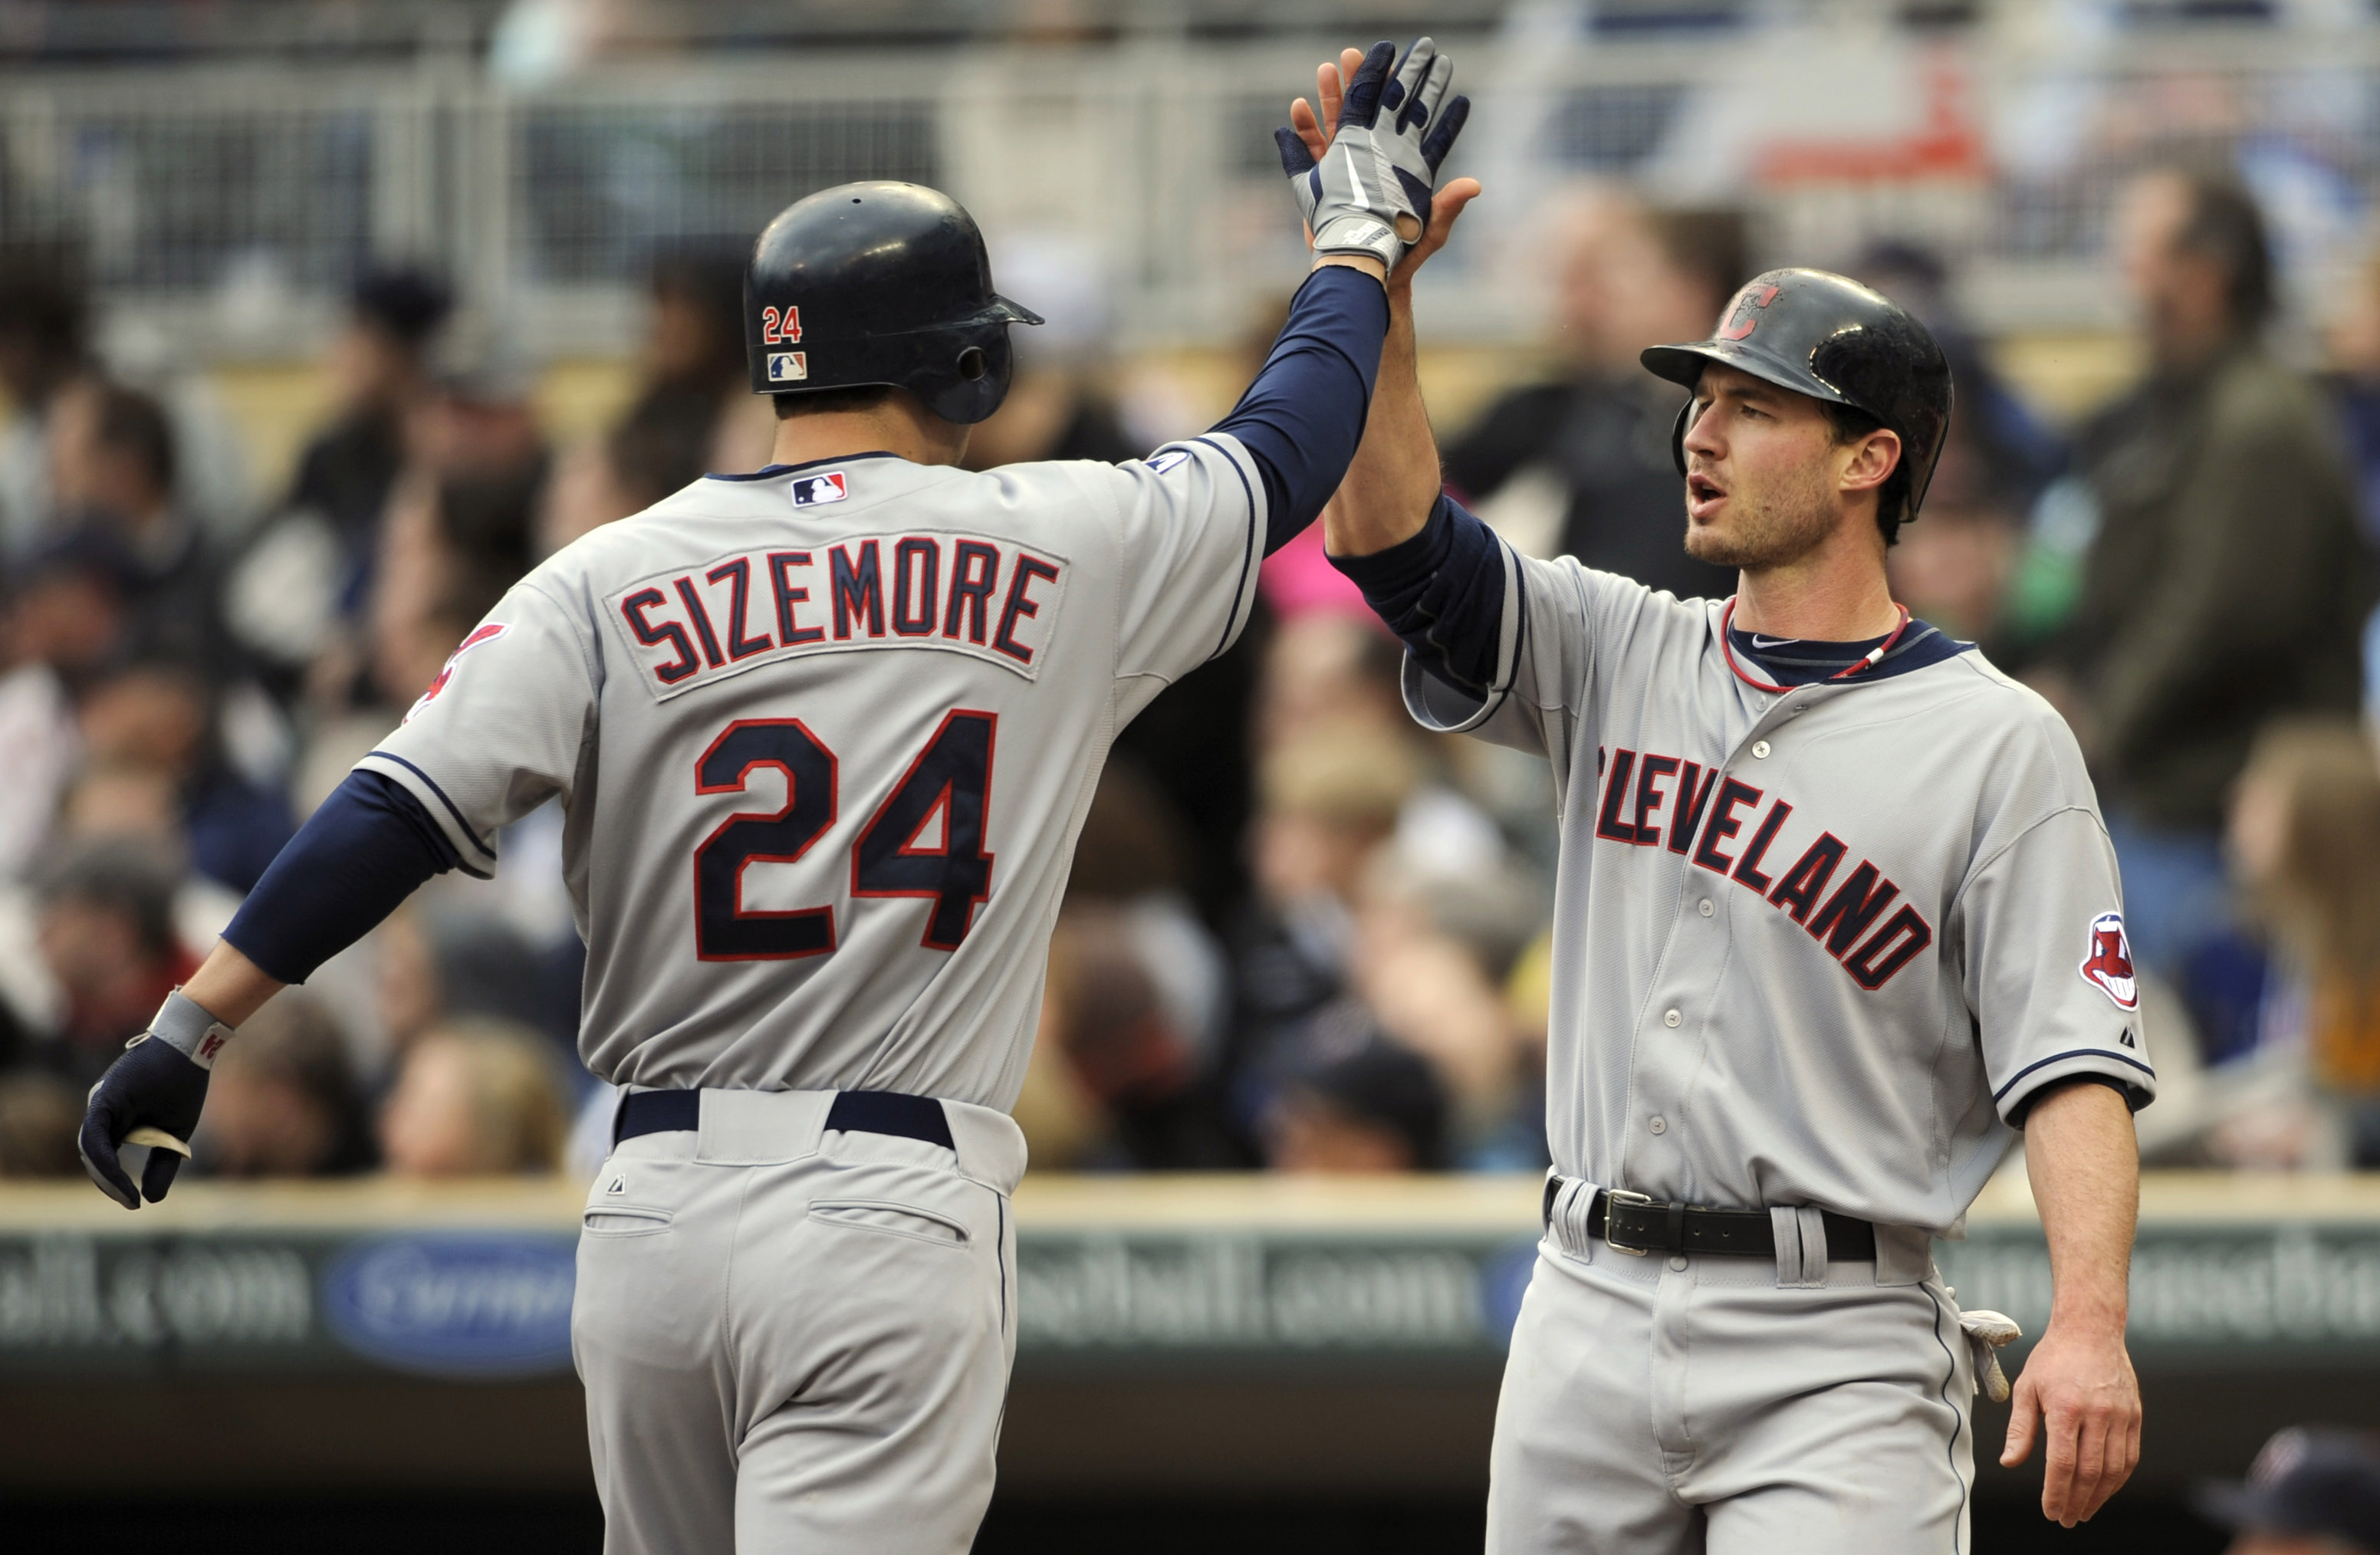 MINNEAPOLIS, MN - APRIL 23: Grady Sizemore #24 and Jack Hannahan #9 of the Cleveland Indians celebrate a two-run home run by Sizemore against the Minnesota Twins during the eighth inning of their game on April 23, 2011 at Target Field in Minneapolis, Minn